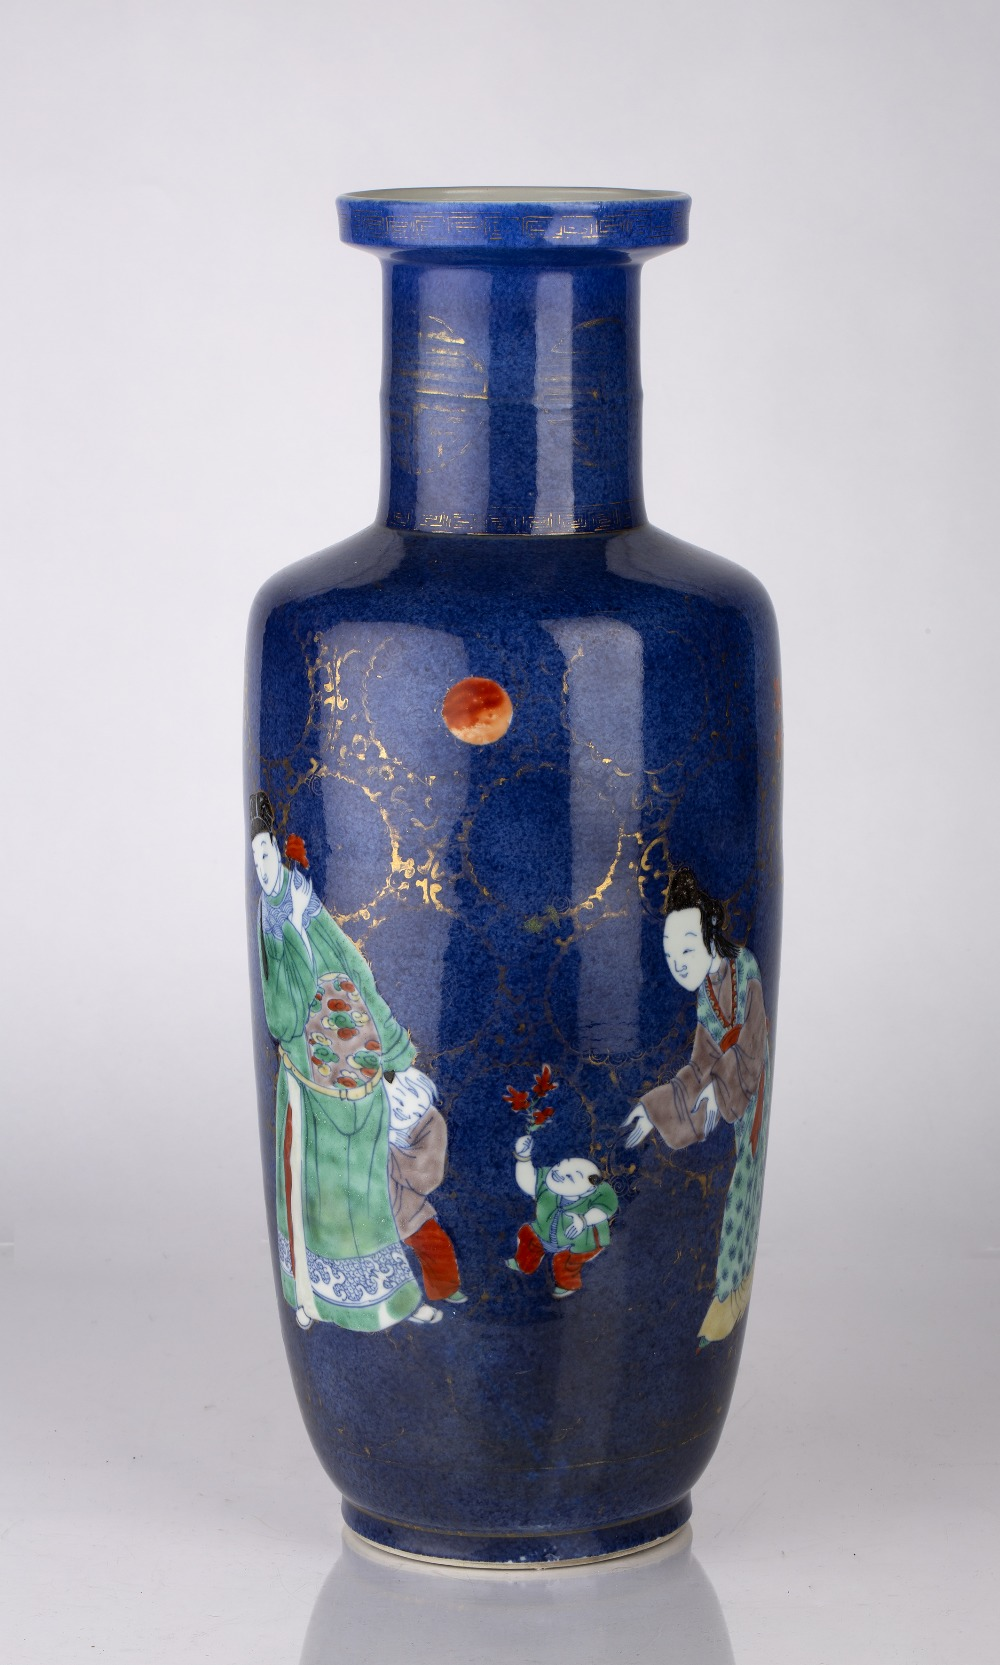 Powder-blue ground rouleau vase Chinese, Kangxi period (1662-1722) decorated in colourful enamels - Image 3 of 6